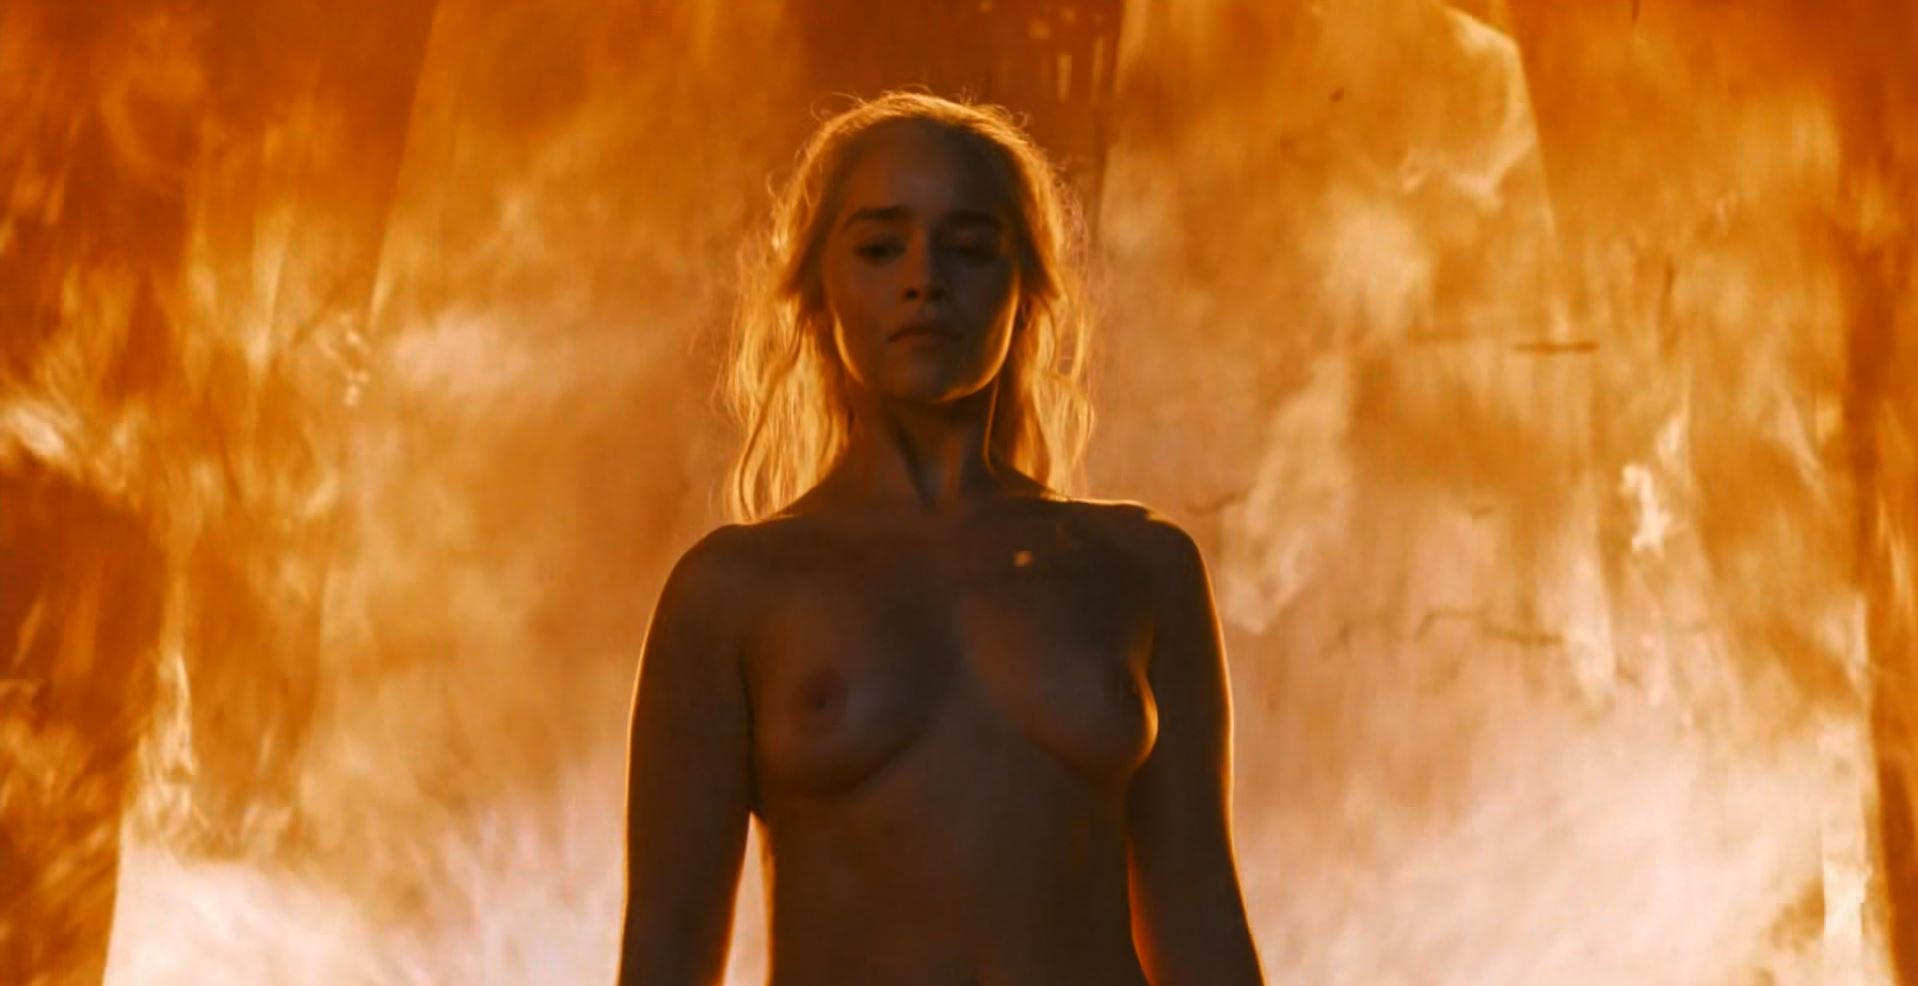 daenerys-walks-naked-out-of-the-fire_-game-of-thrones-s6ep4-book-of-the-stranger-review.jpg